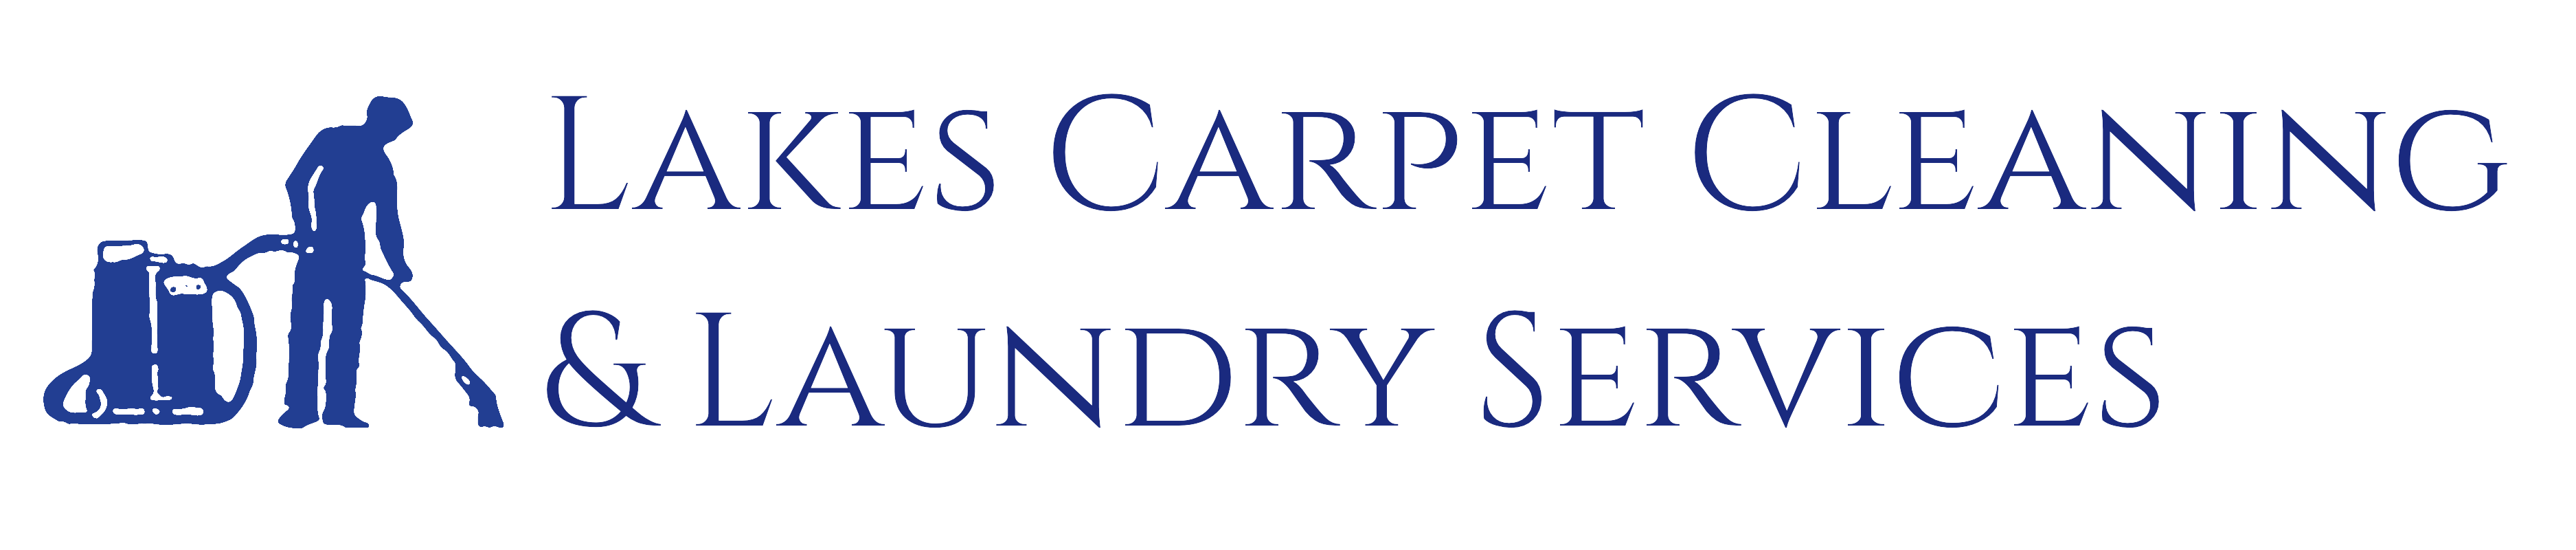 Lakes Carpet Cleaning Services Logo